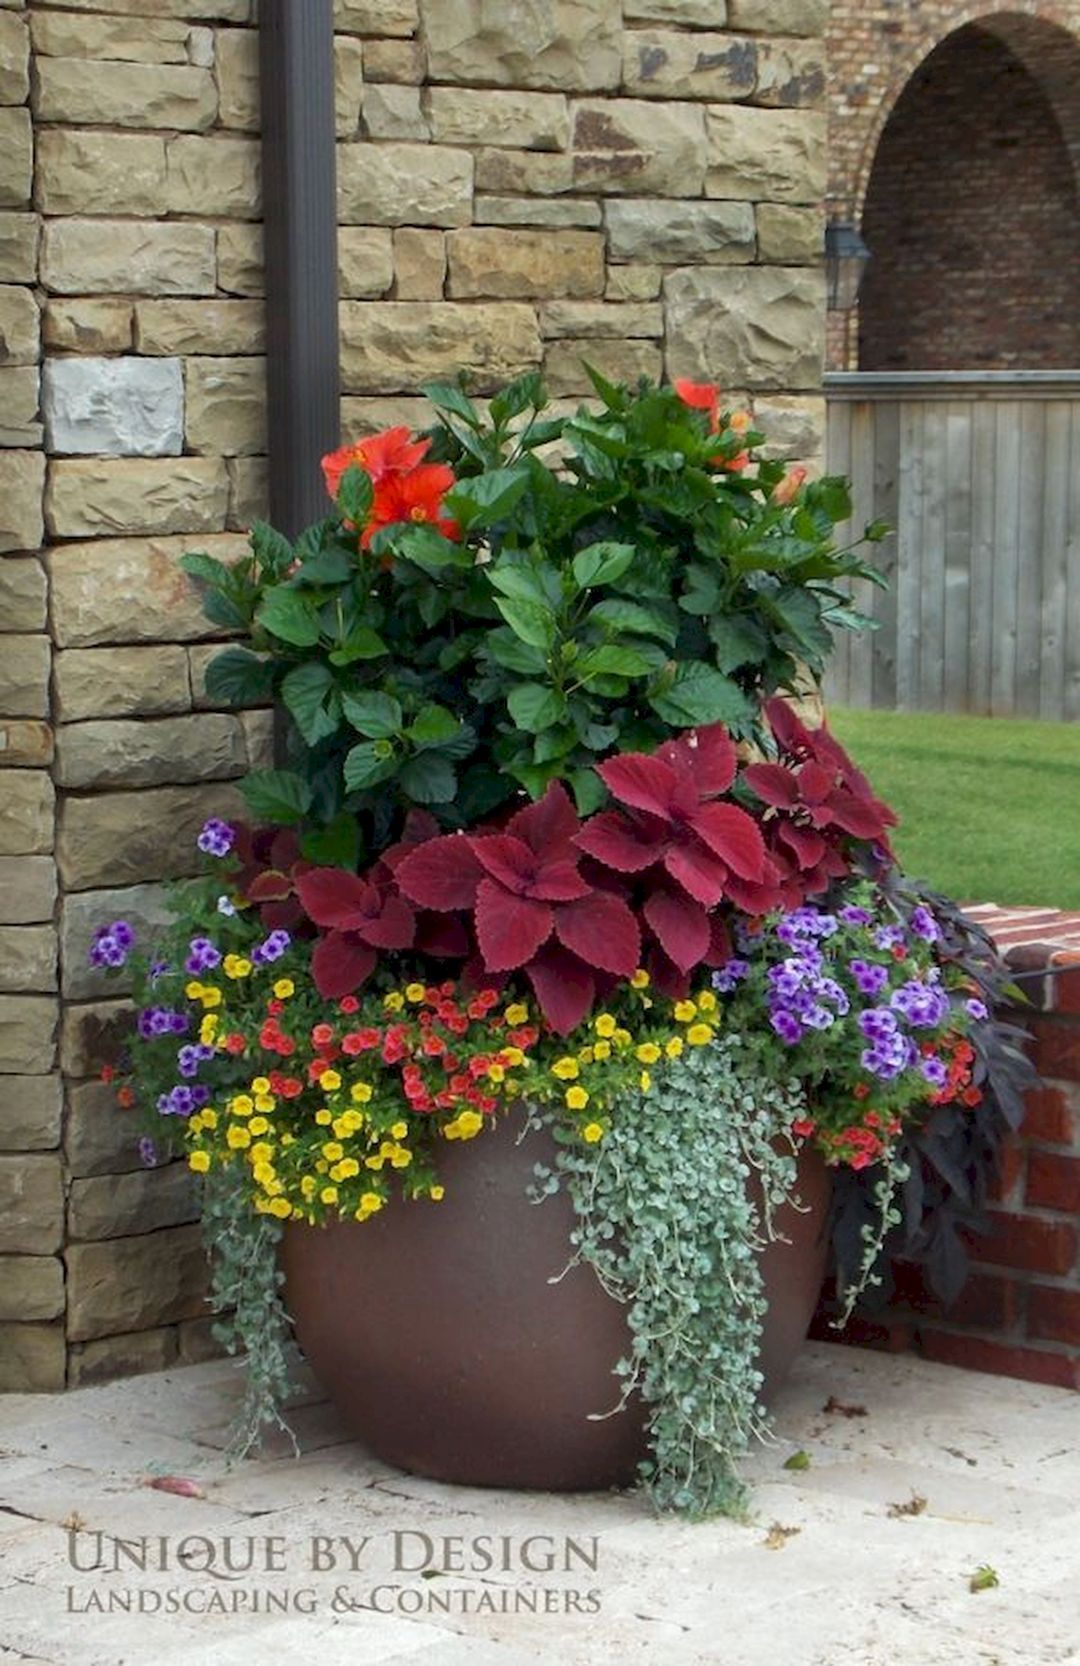 15 Most Beautiful Container Gardening Flowers Ideas For Your Home